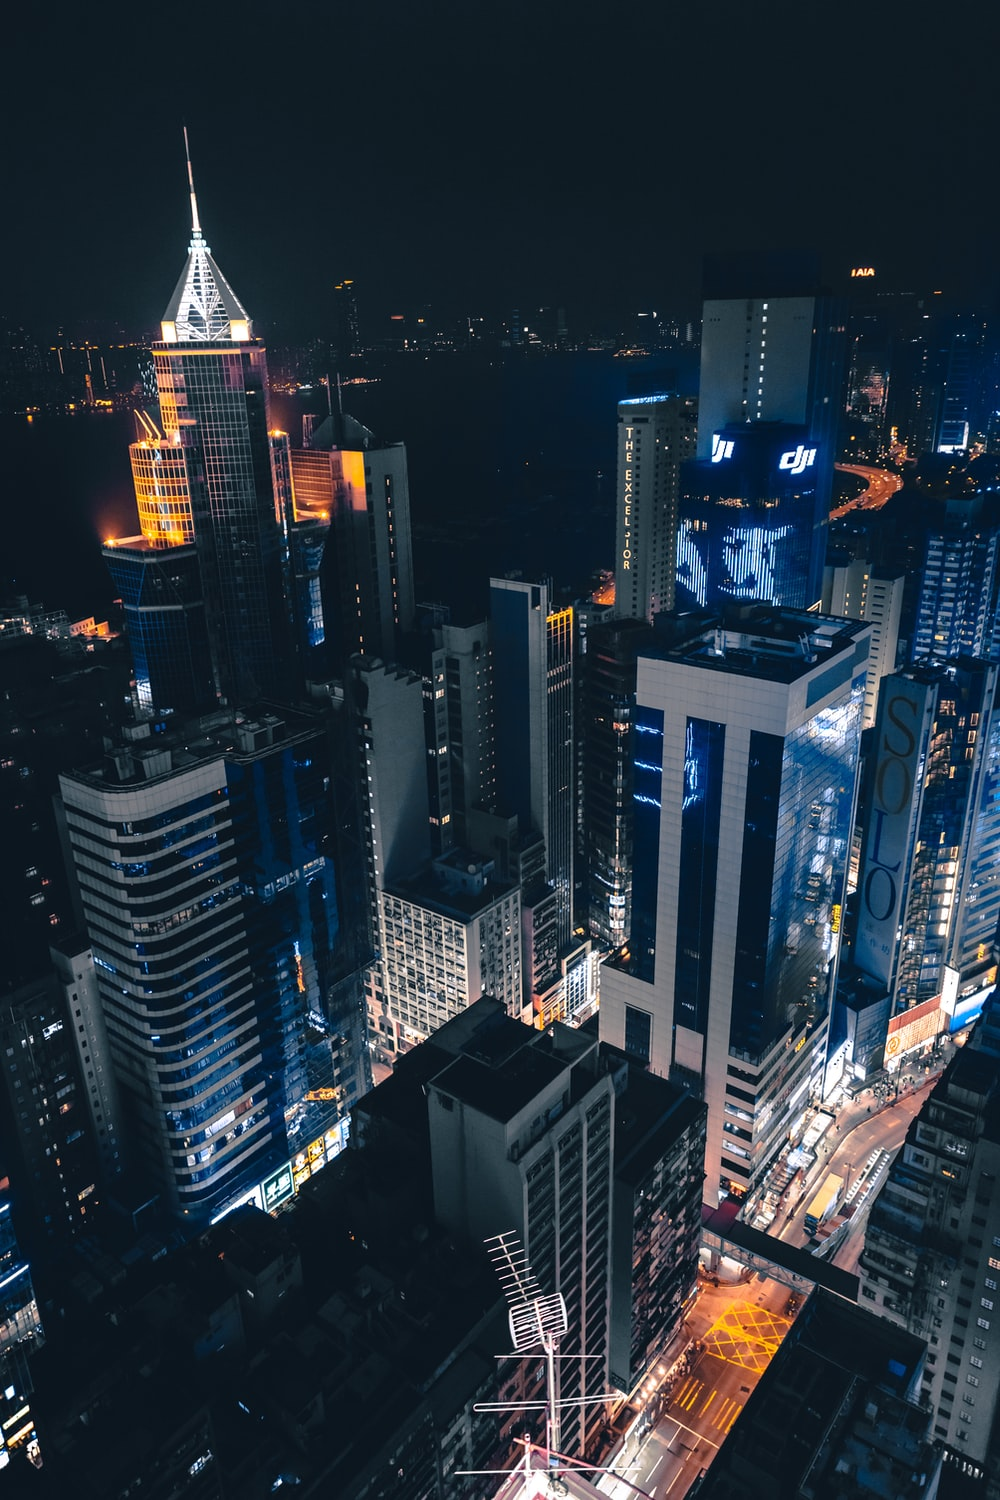 aerial view of New York City buildings during nighttime